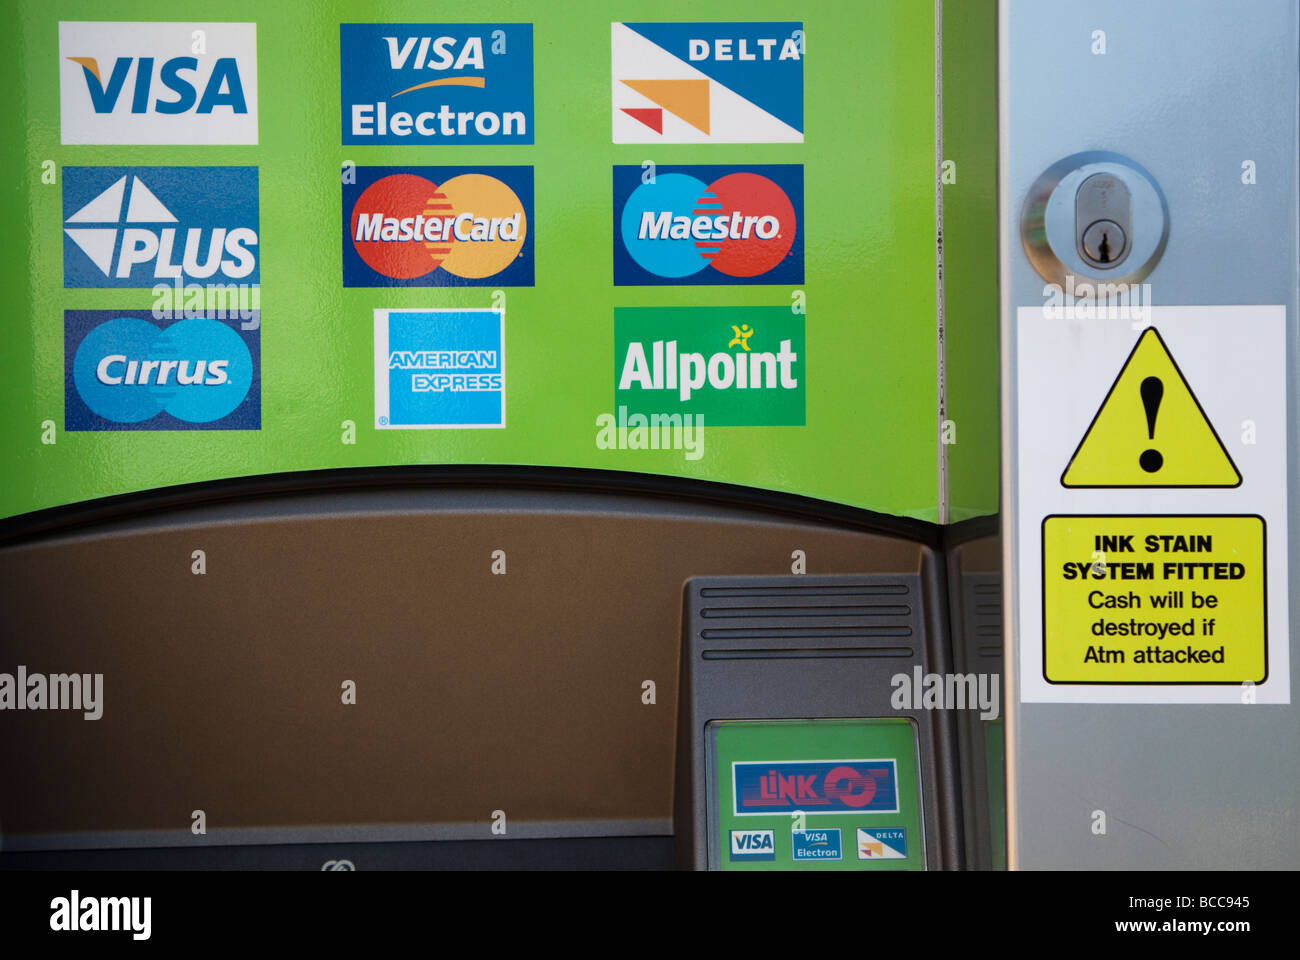 Atm with credit card signs and warning that ink system will destroy atm with credit card signs and warning that ink system will destroy money if machine is attacked barry wales uk colourmoves